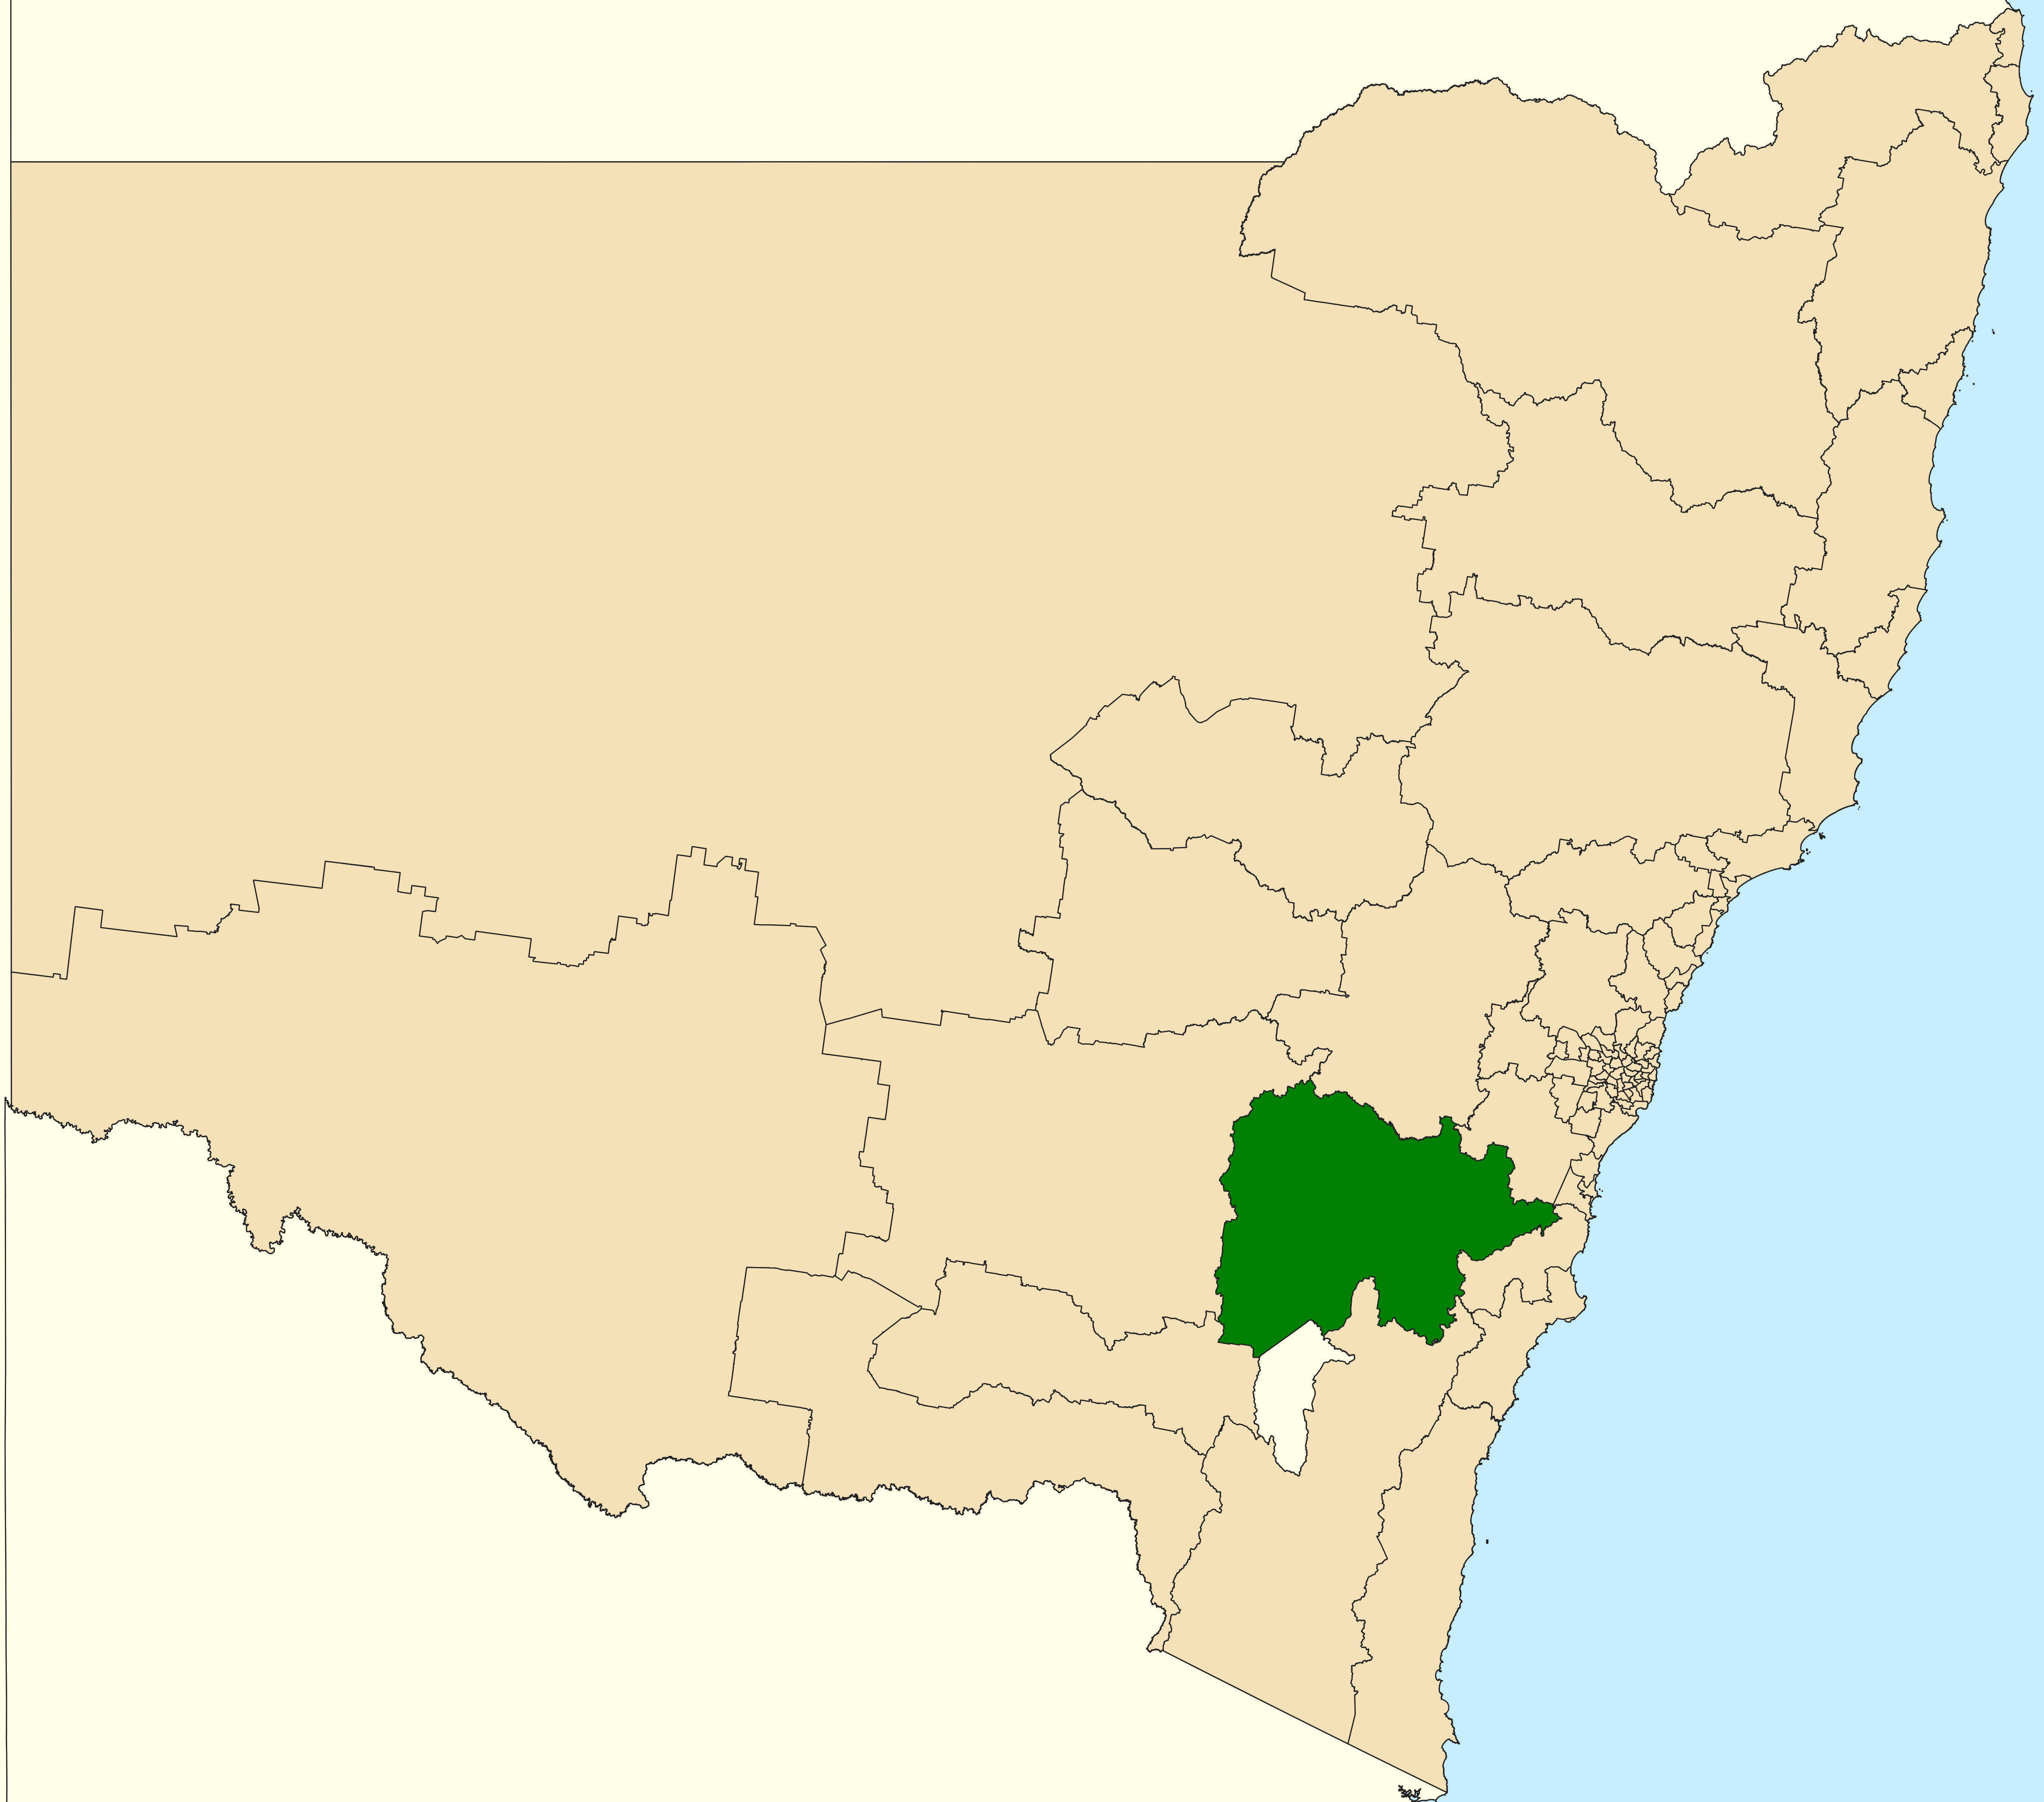 Electoral district of Goulburn - Wikipedia